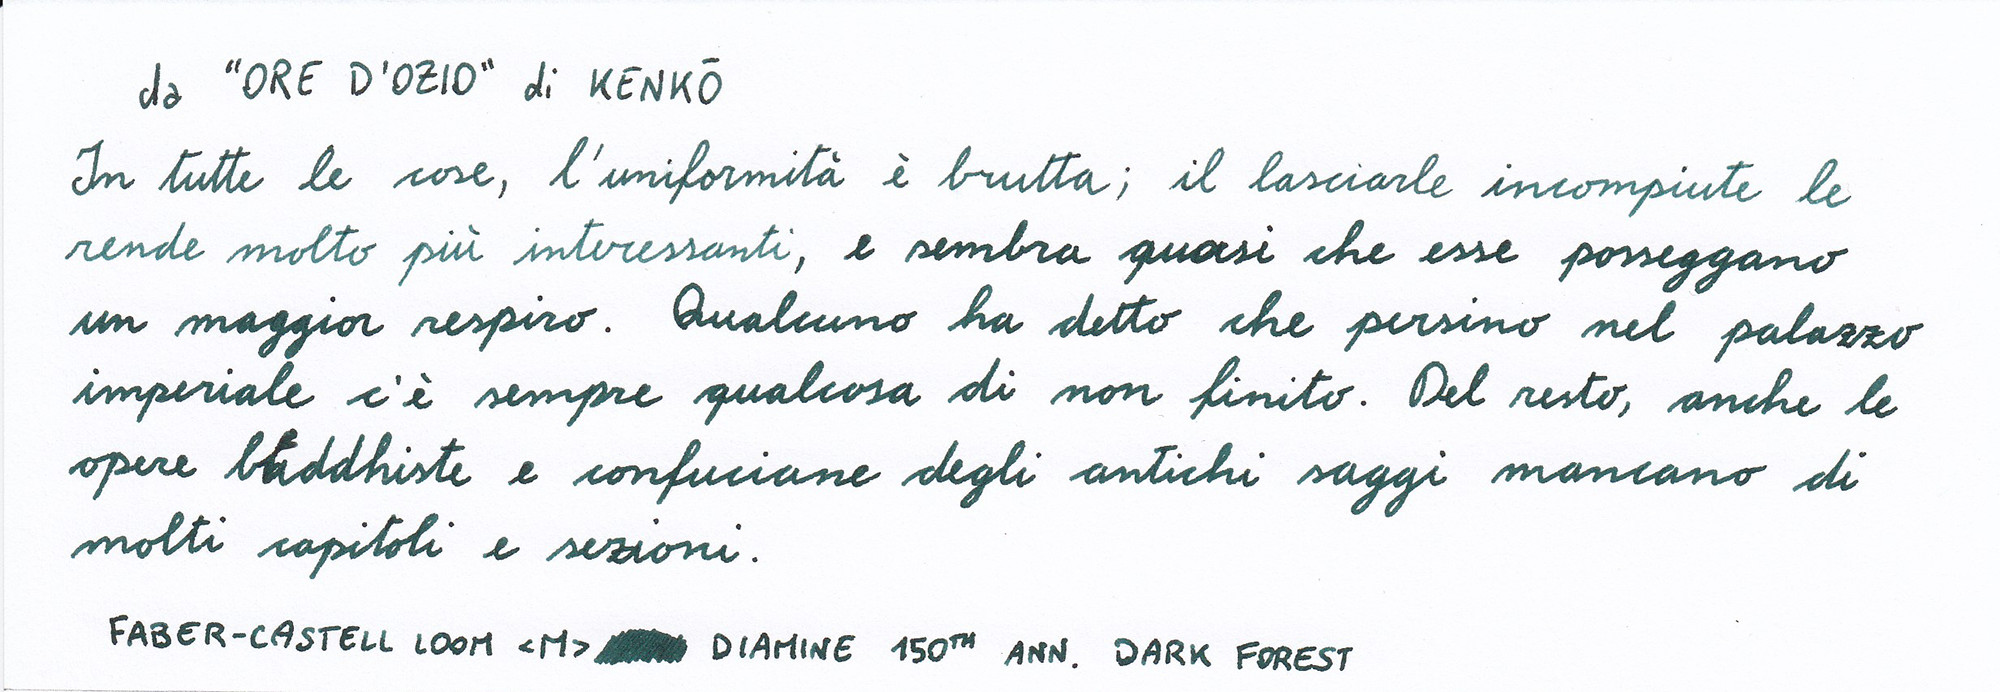 Diamine 150th Dark Forest Kenko Ore Ozio.jpg